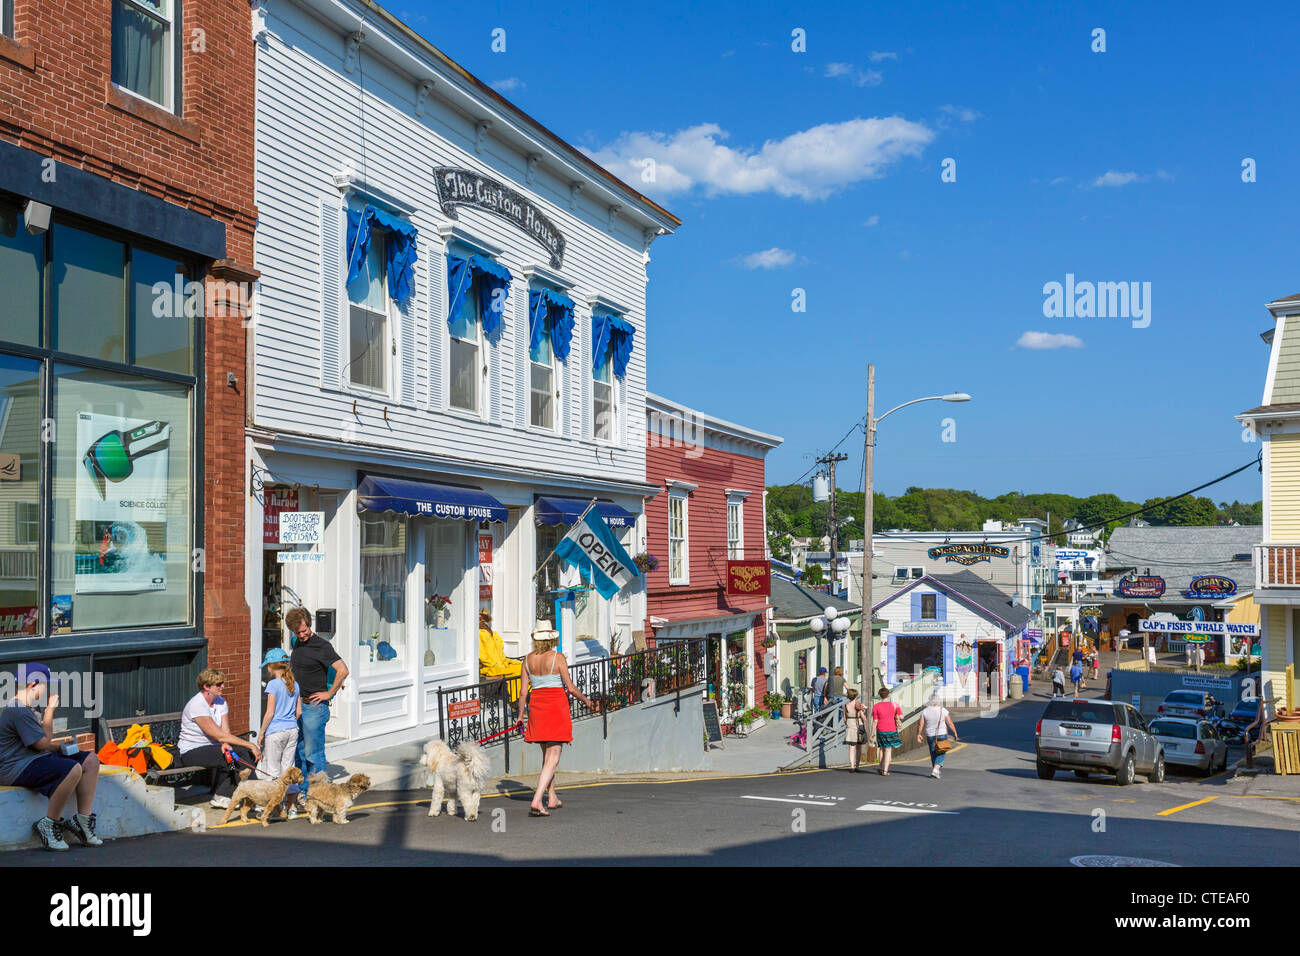 east boothbay chat The world's most comprehensive professionally edited abbreviations and acronyms database all trademarks/service marks referenced on this site are properties of their respective owners.